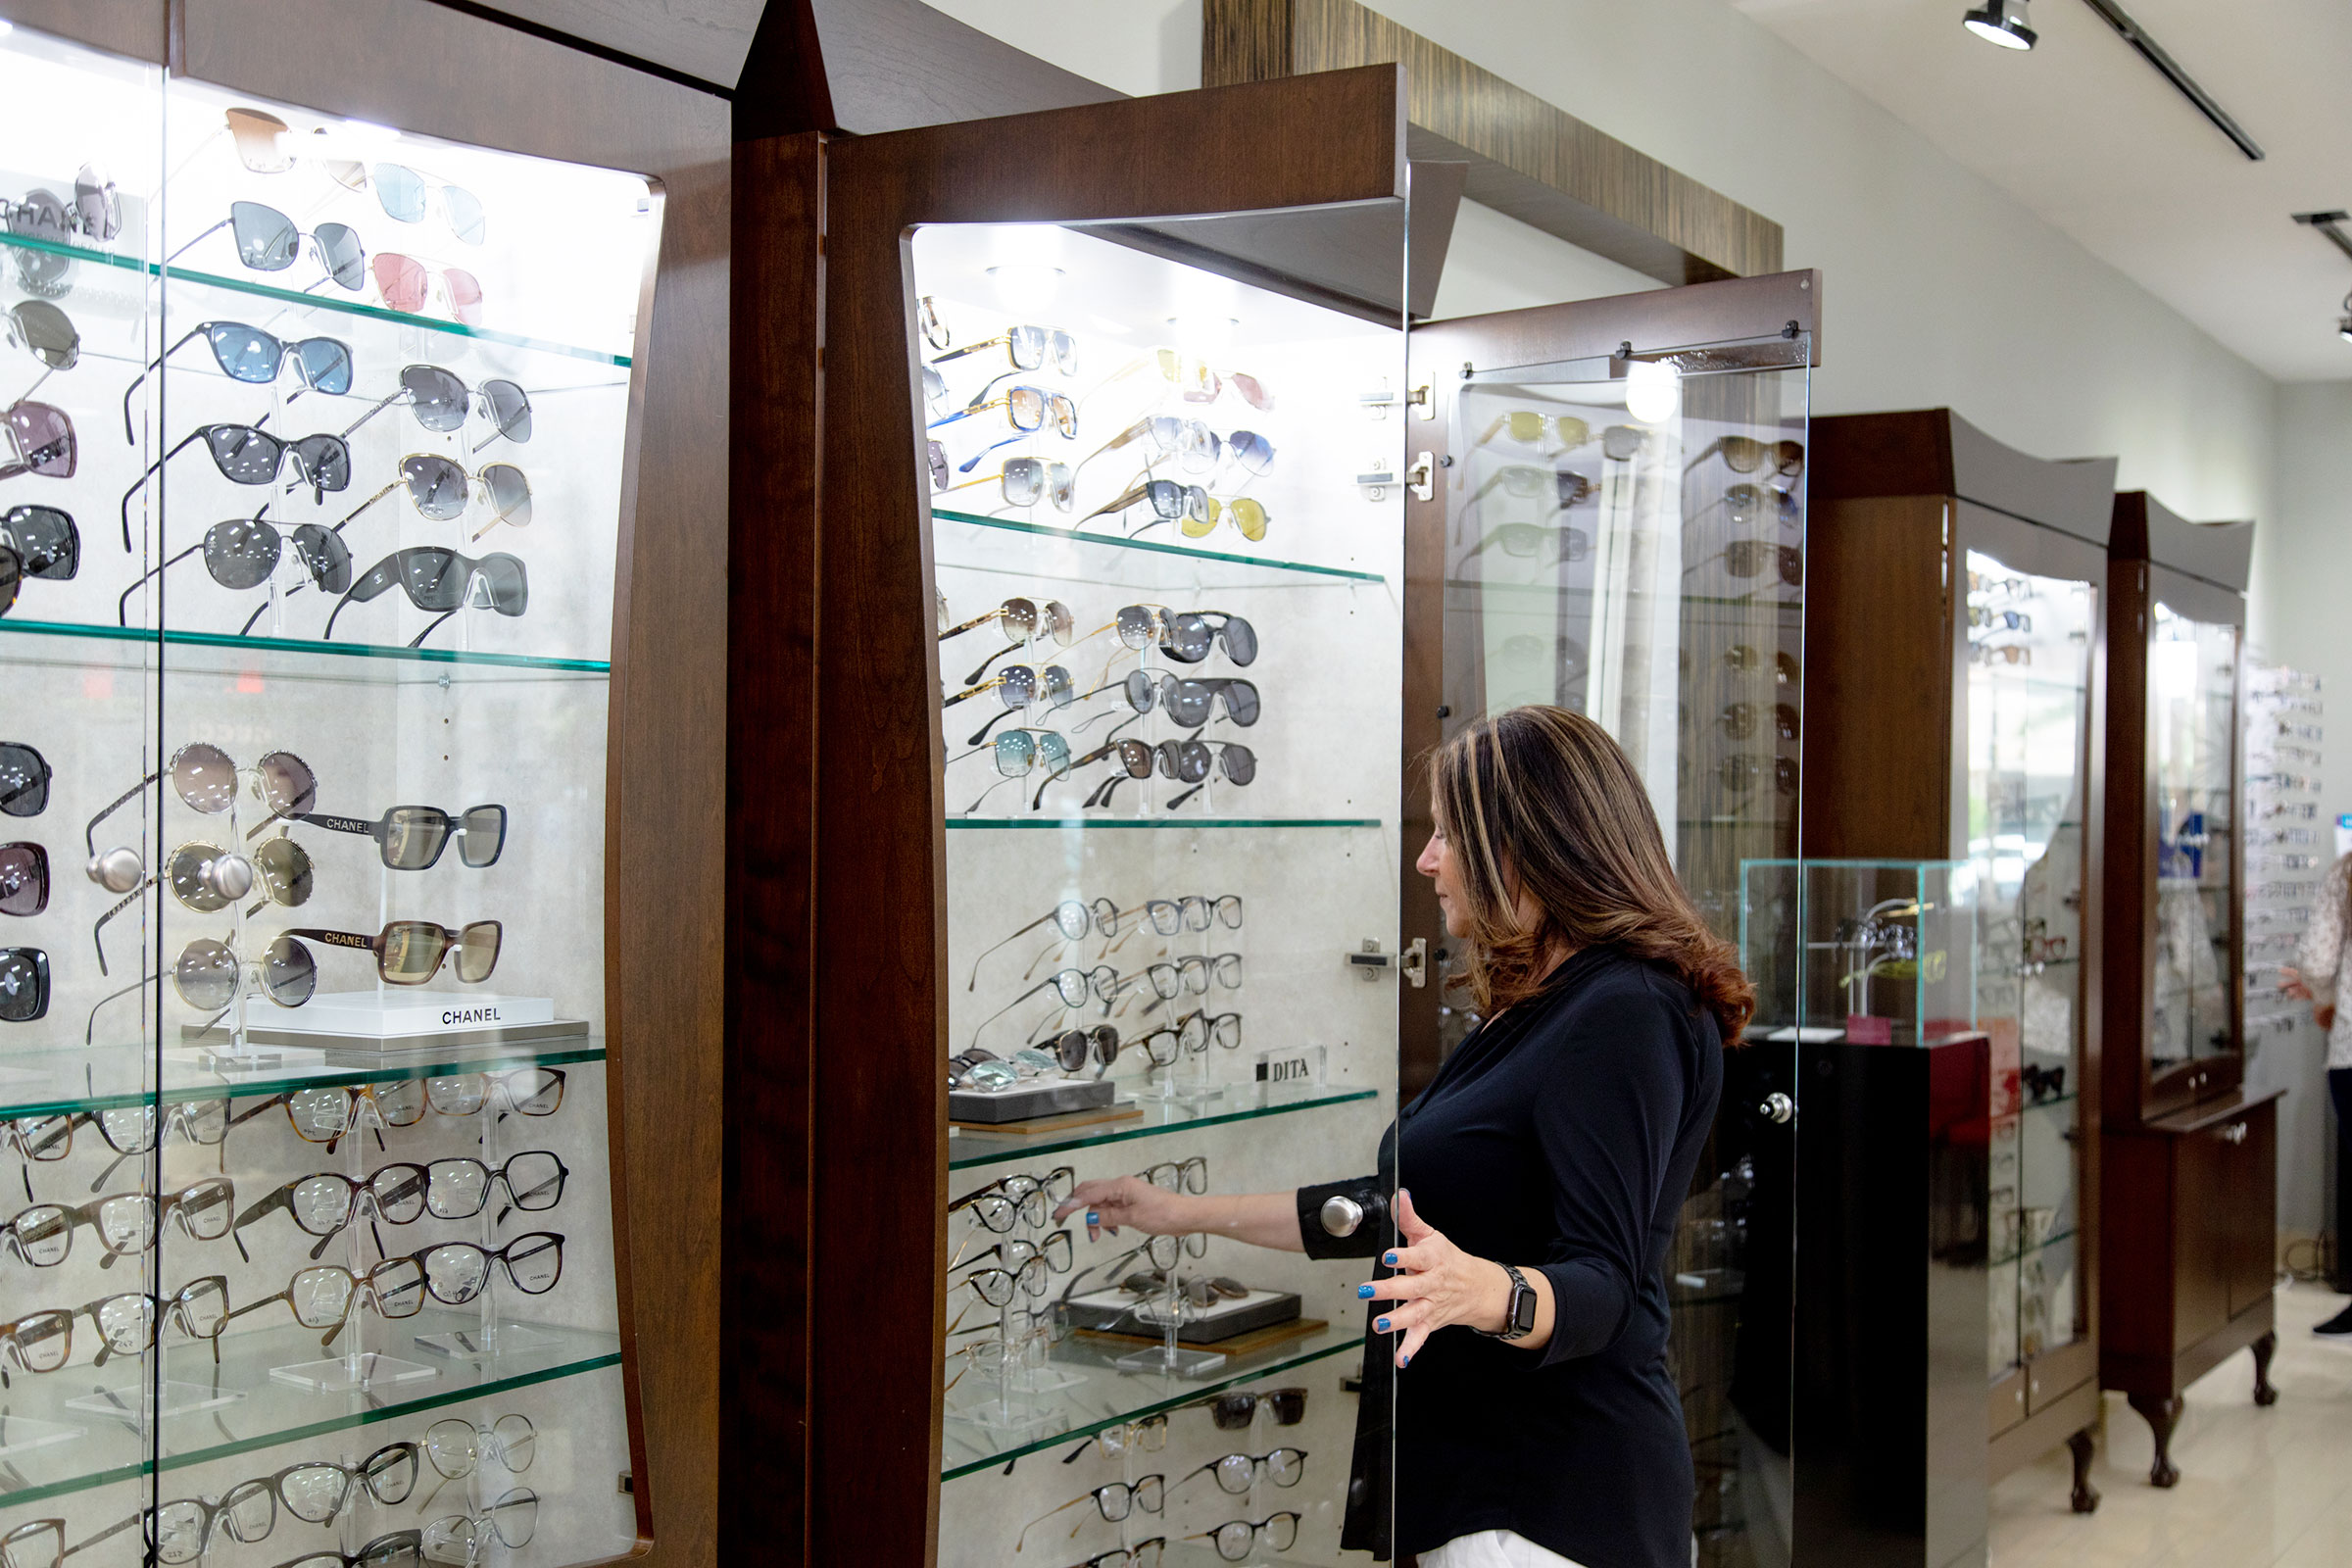 Choose The Perfect Designer Sunglasses For Your Lifestyle with The Help of Our Team